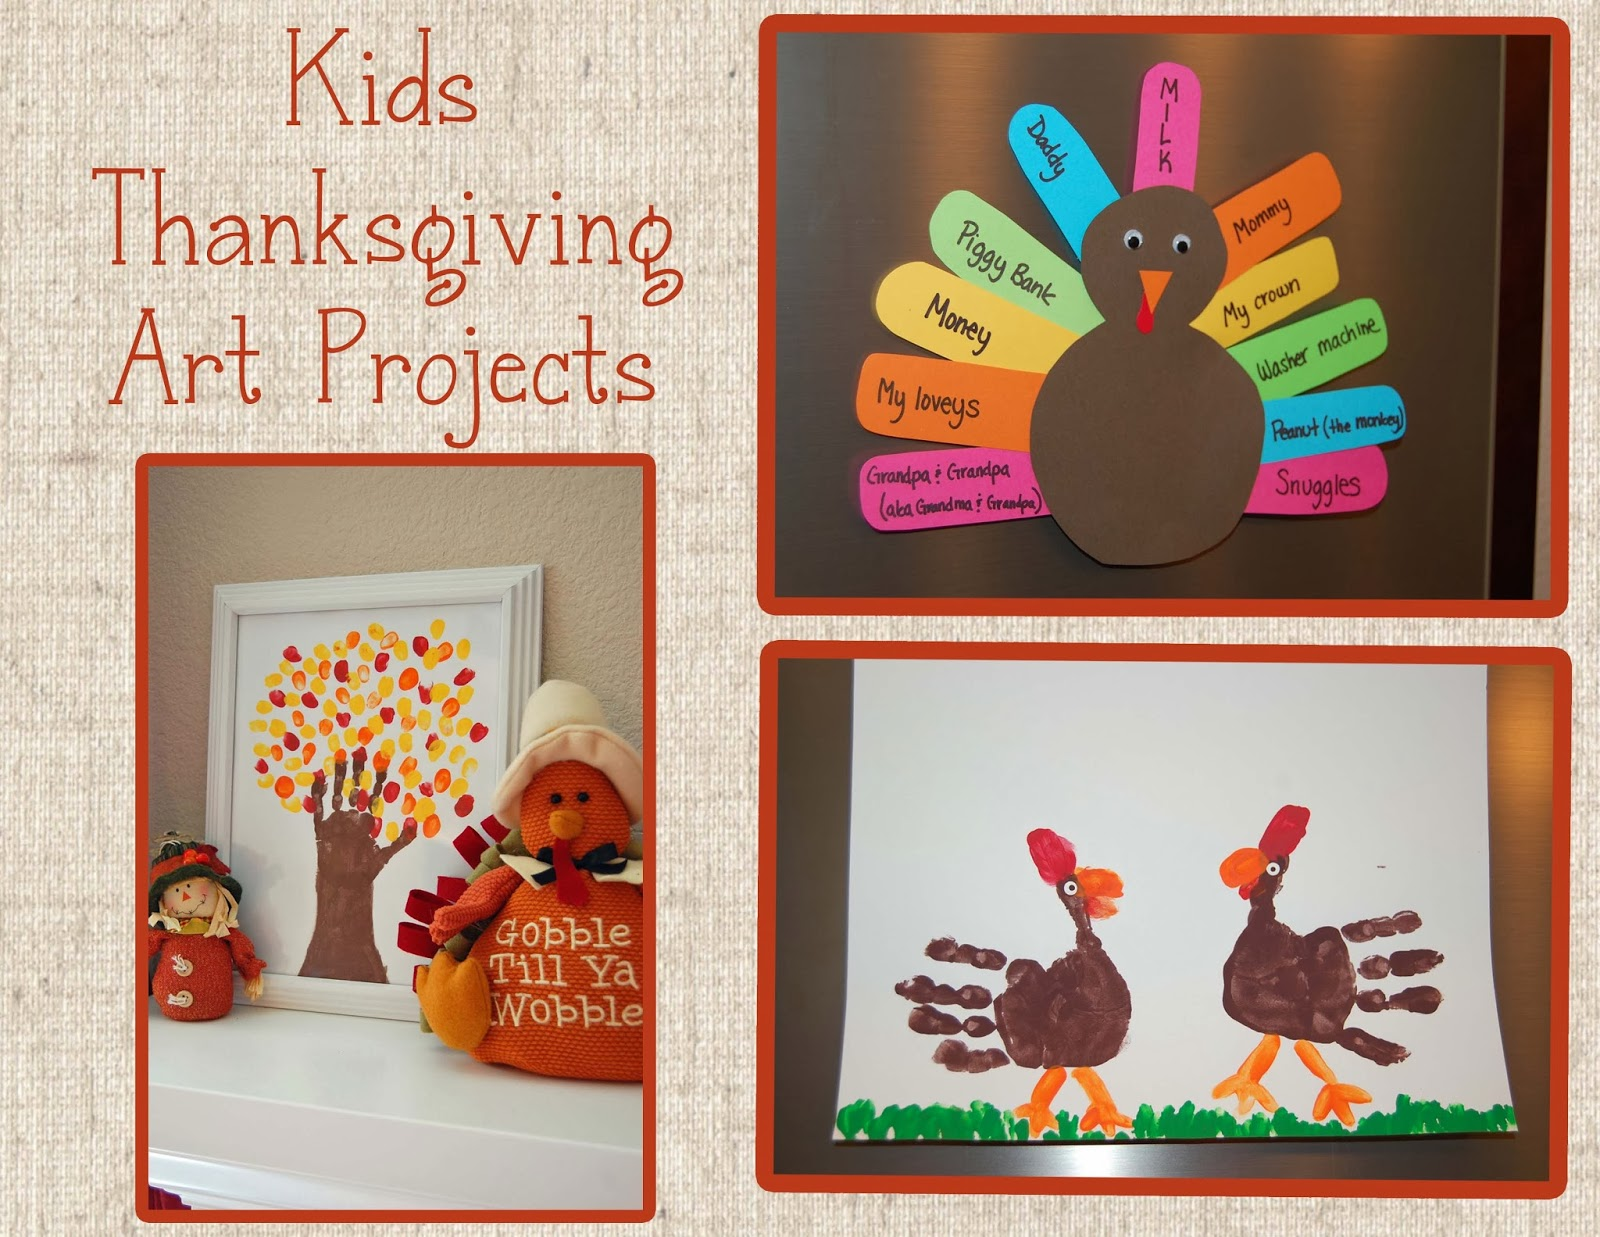 Attractive Thanksgiving Arts And Crafts Ideas For Kids Part - 14: Thanksgiving Rewind- Kids Thanksgiving Art Projects